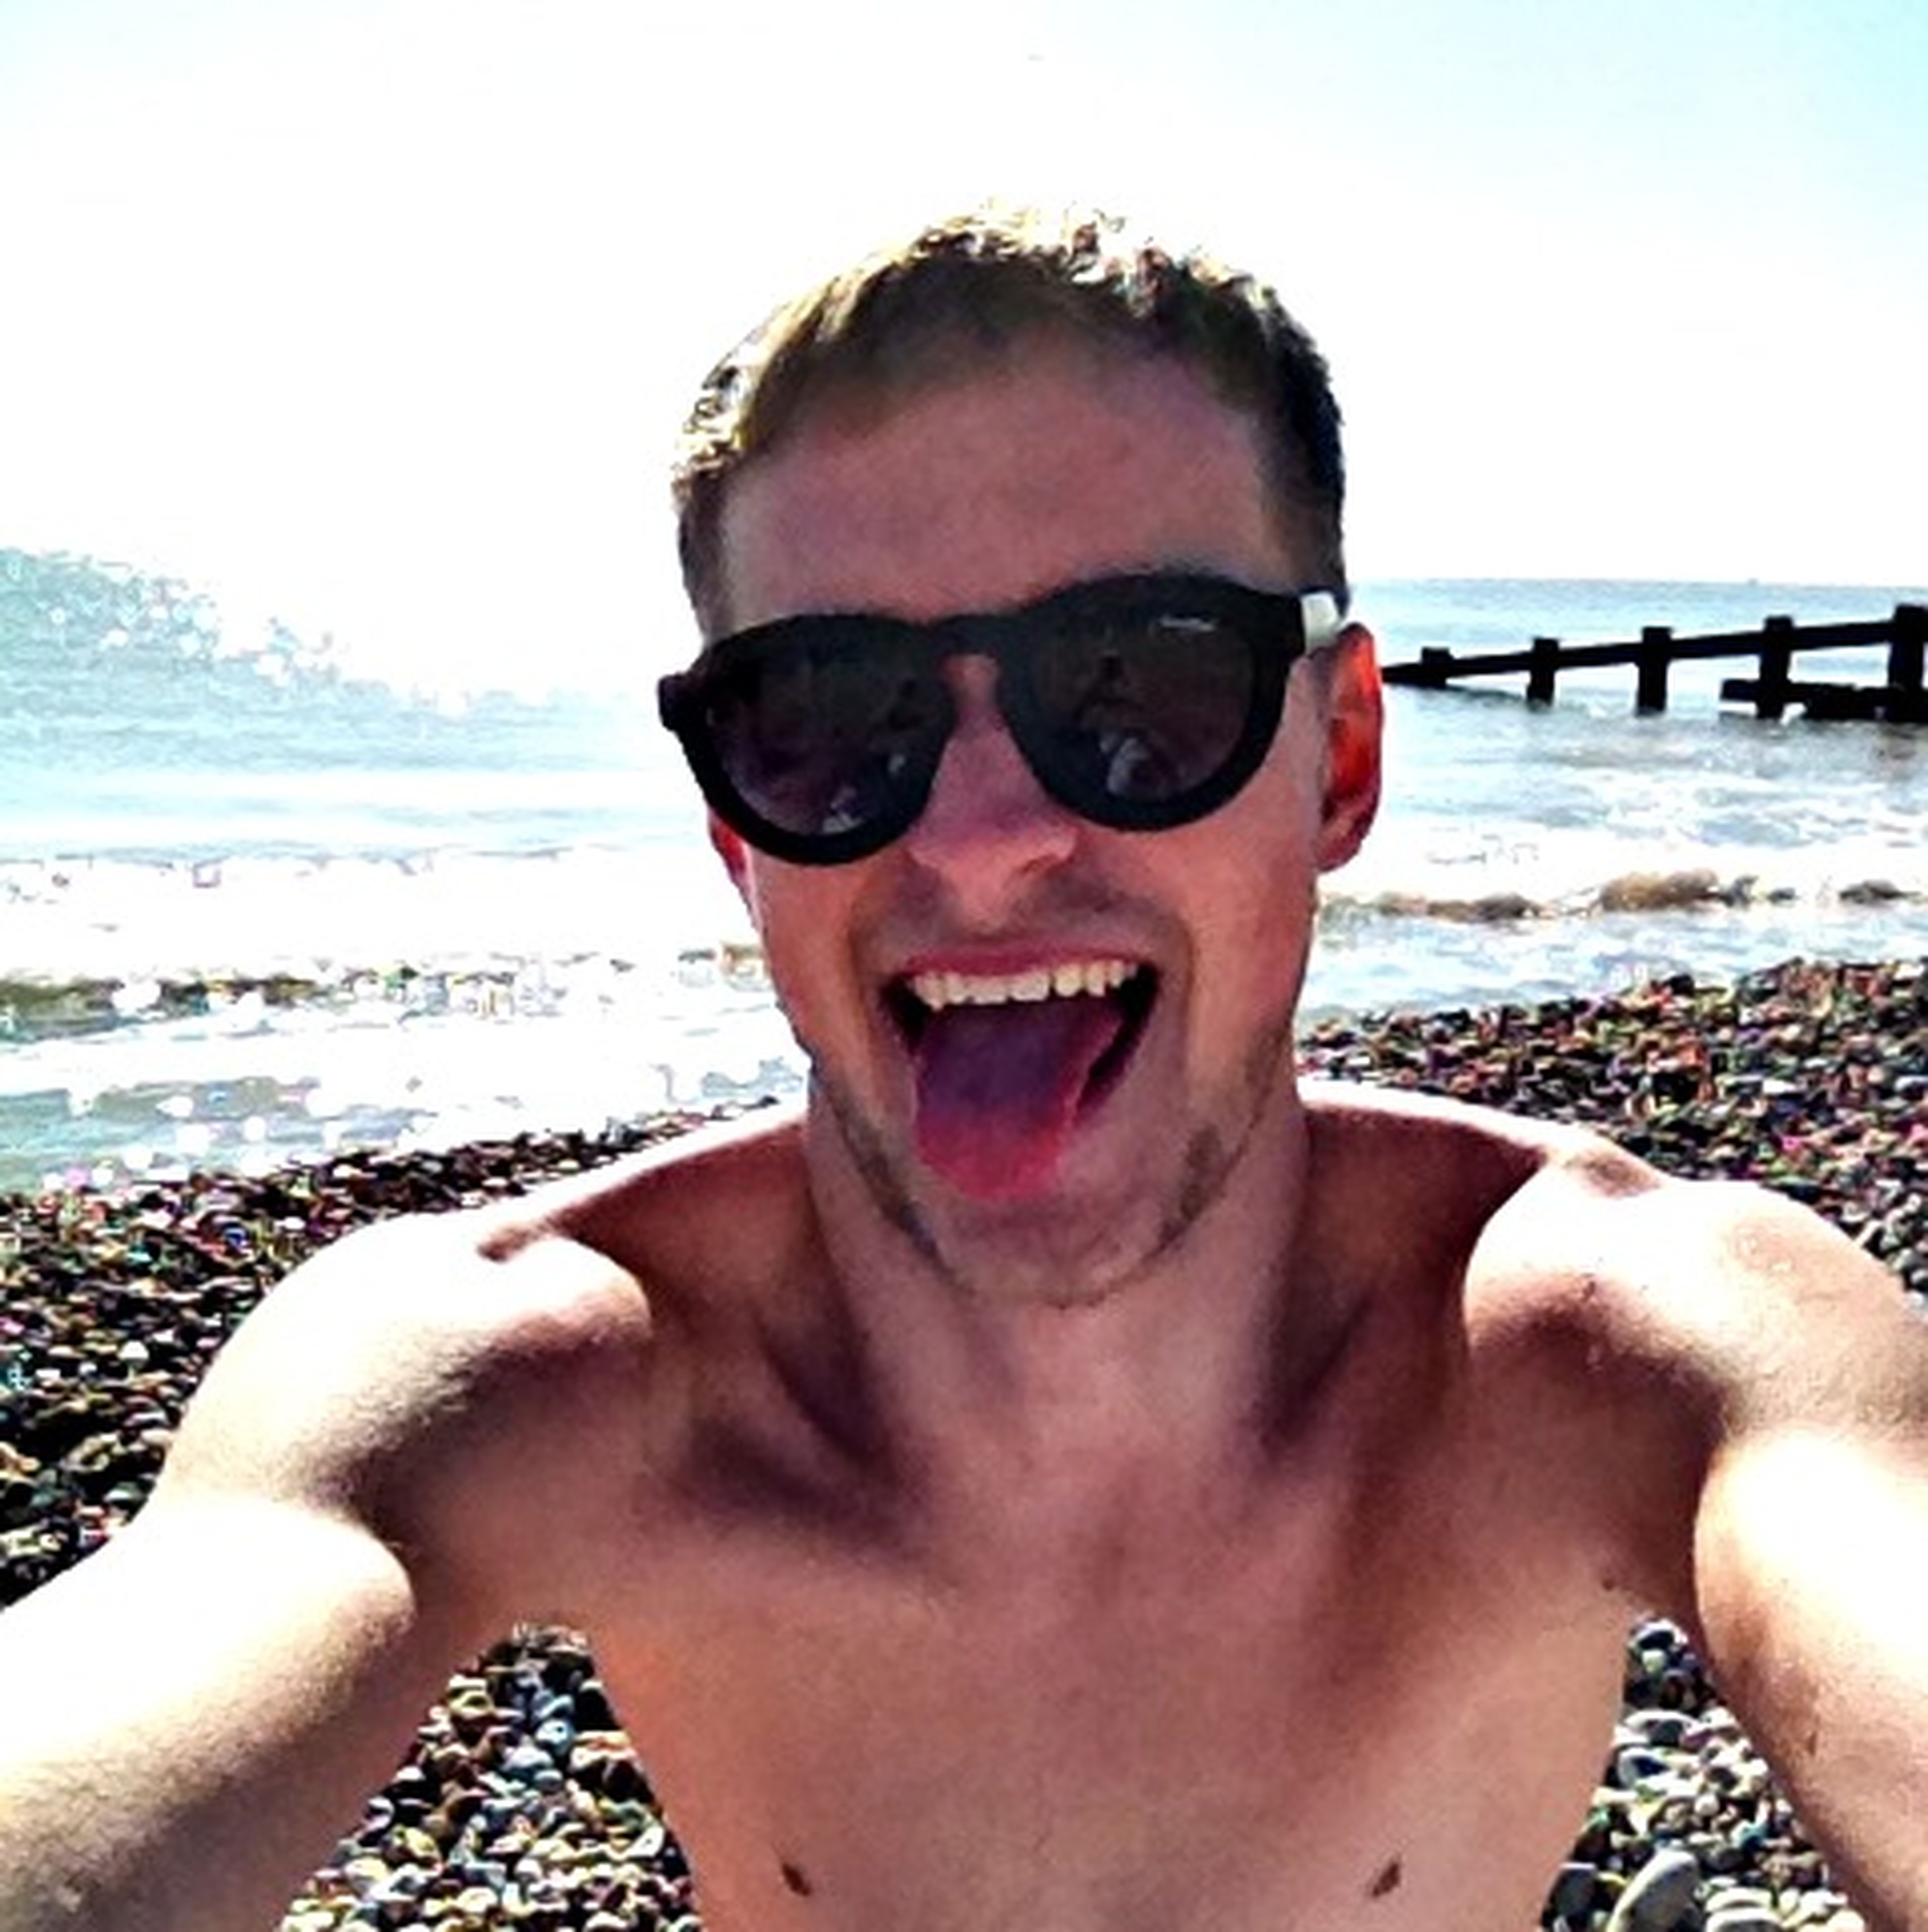 sunglasses, portrait, beach, lifestyles, looking at camera, person, leisure activity, young adult, headshot, sea, water, front view, young men, shore, sky, close-up, head and shoulders, sunlight